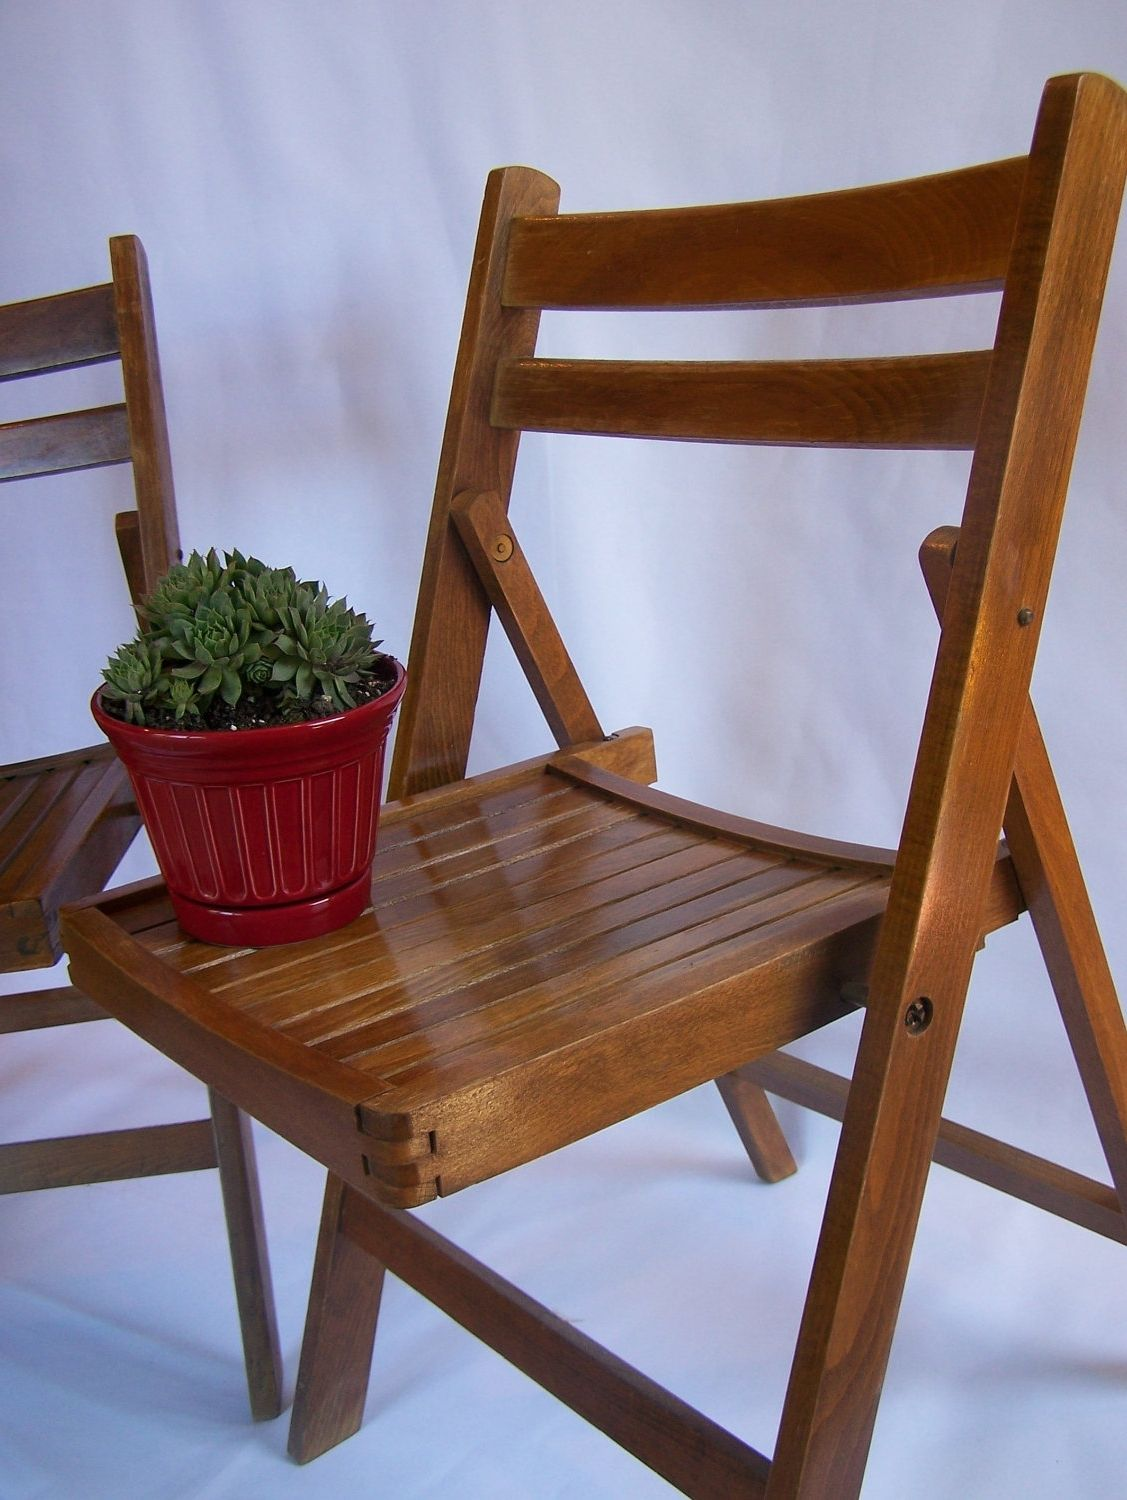 Antique Wooden Folding Chairs - Antique Wooden Folding Chairs Folding Chairs Pinterest